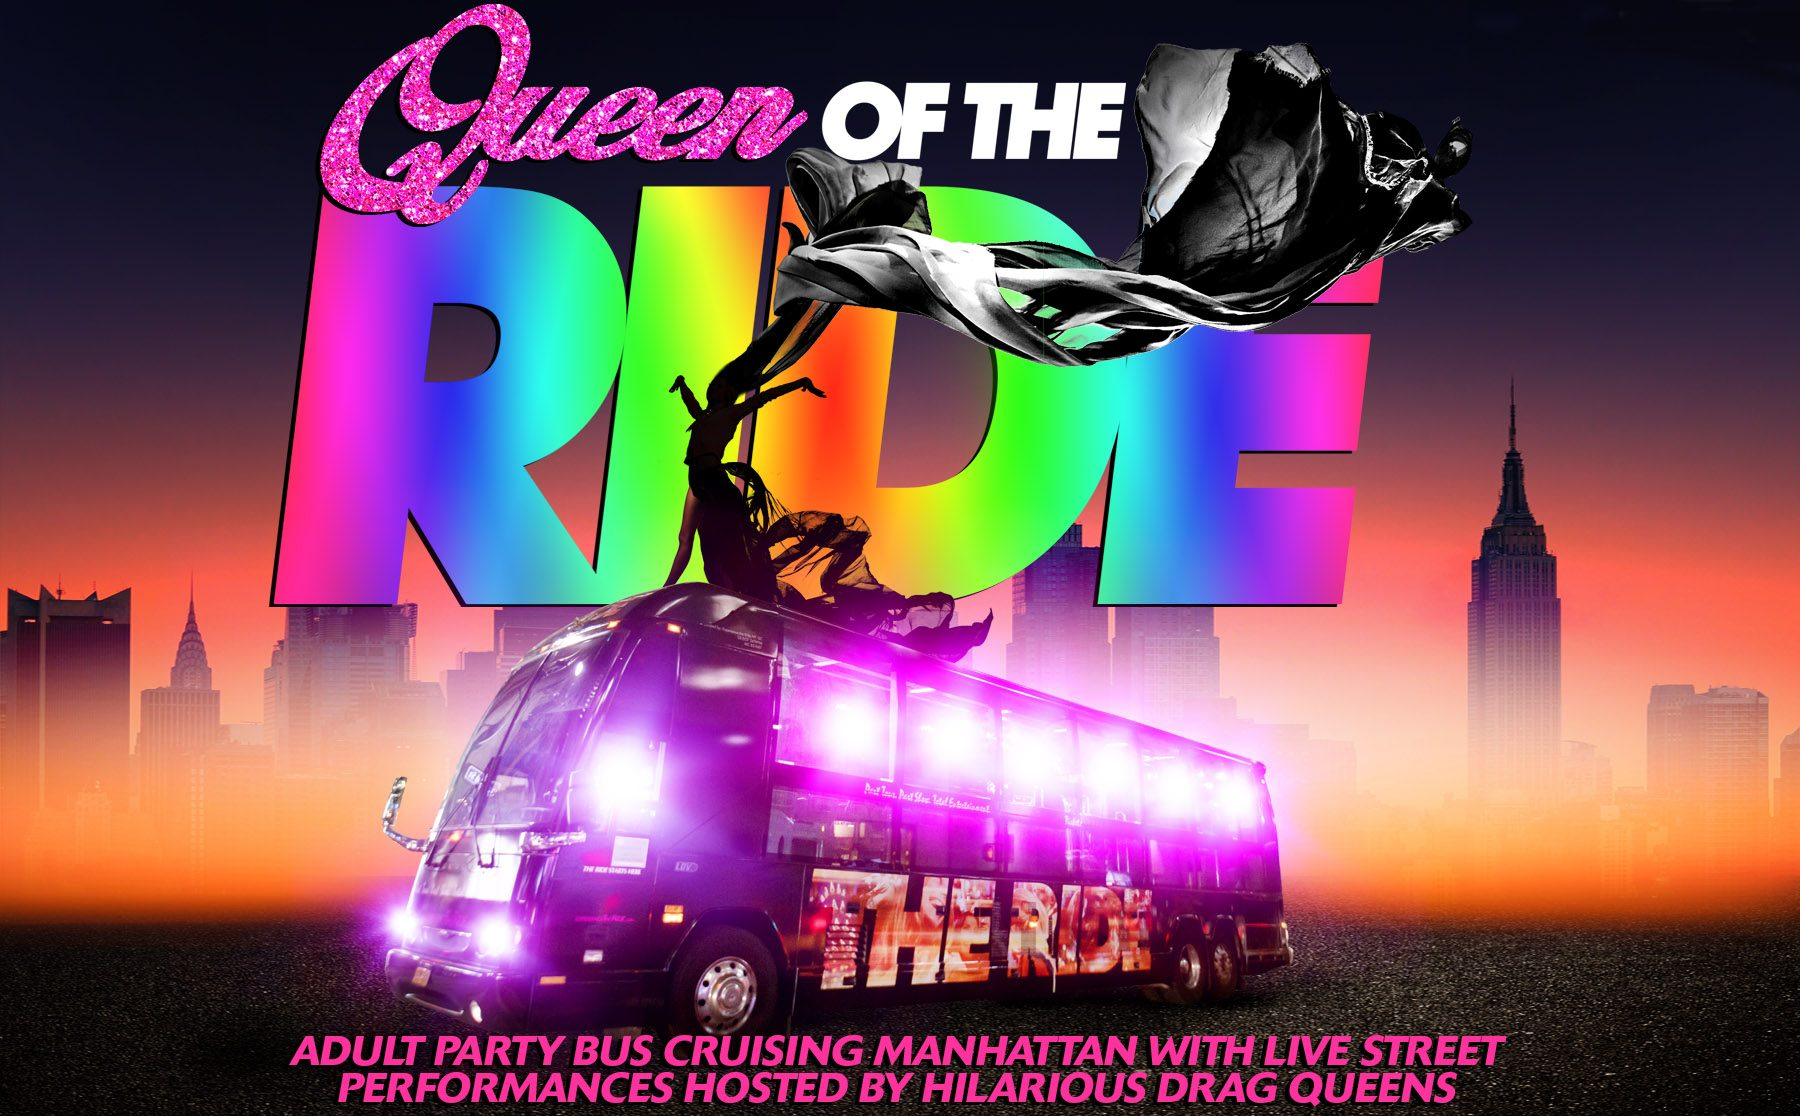 Queen of THE RIDE Logo/Promotional Image